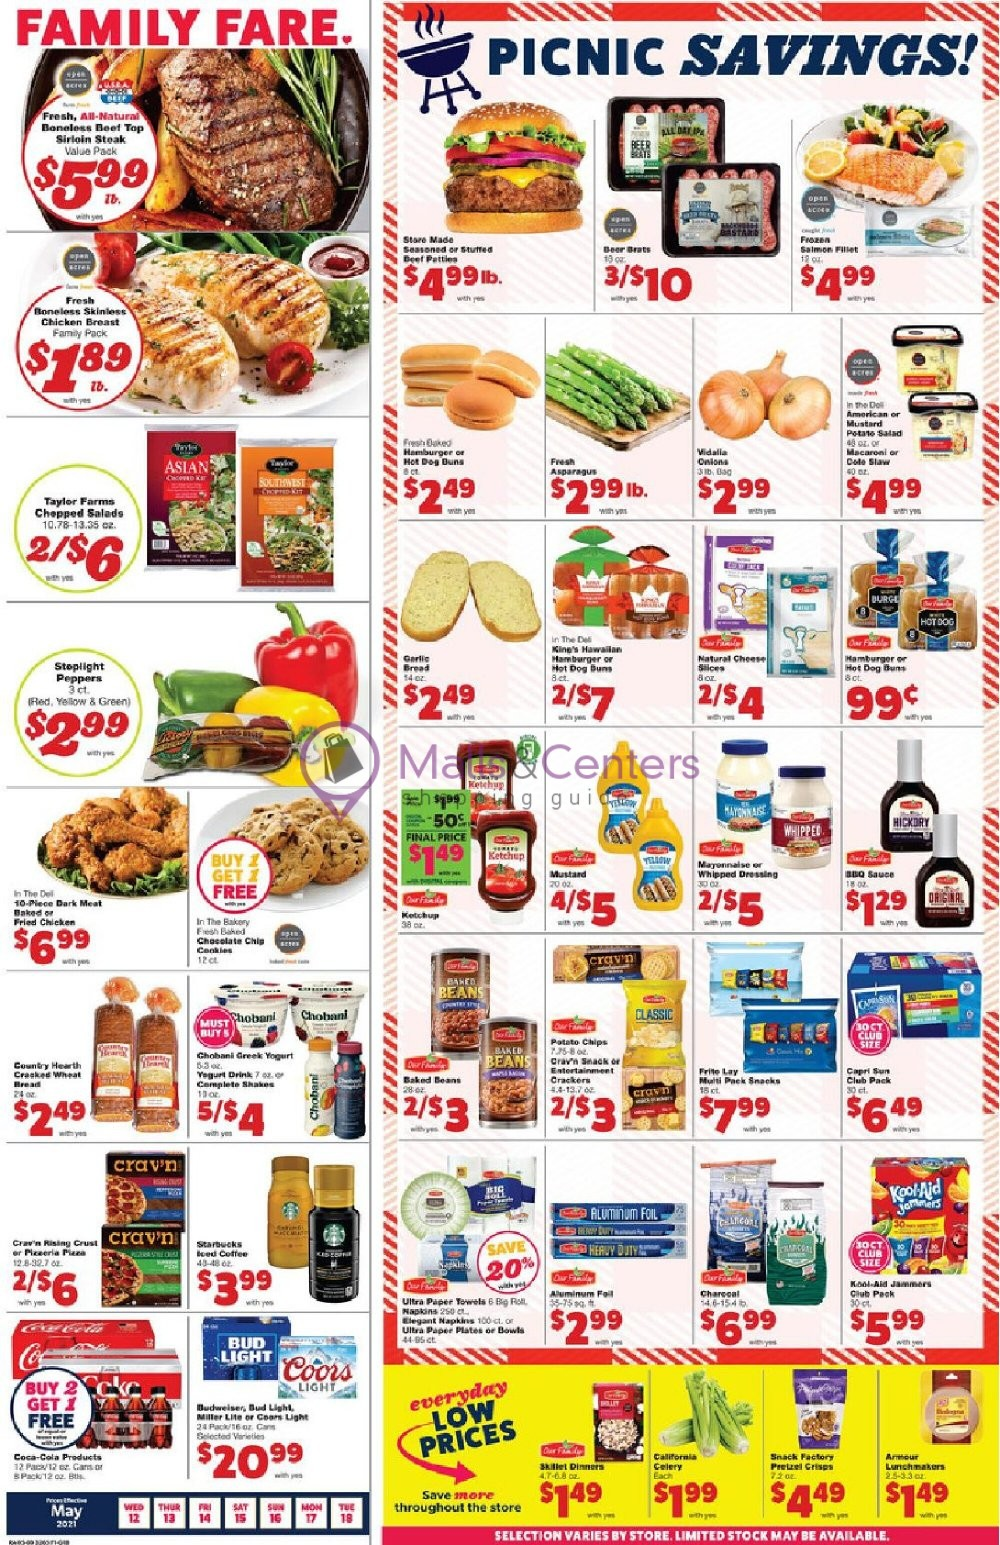 weekly ads Family Fare - page 1 - mallscenters.com